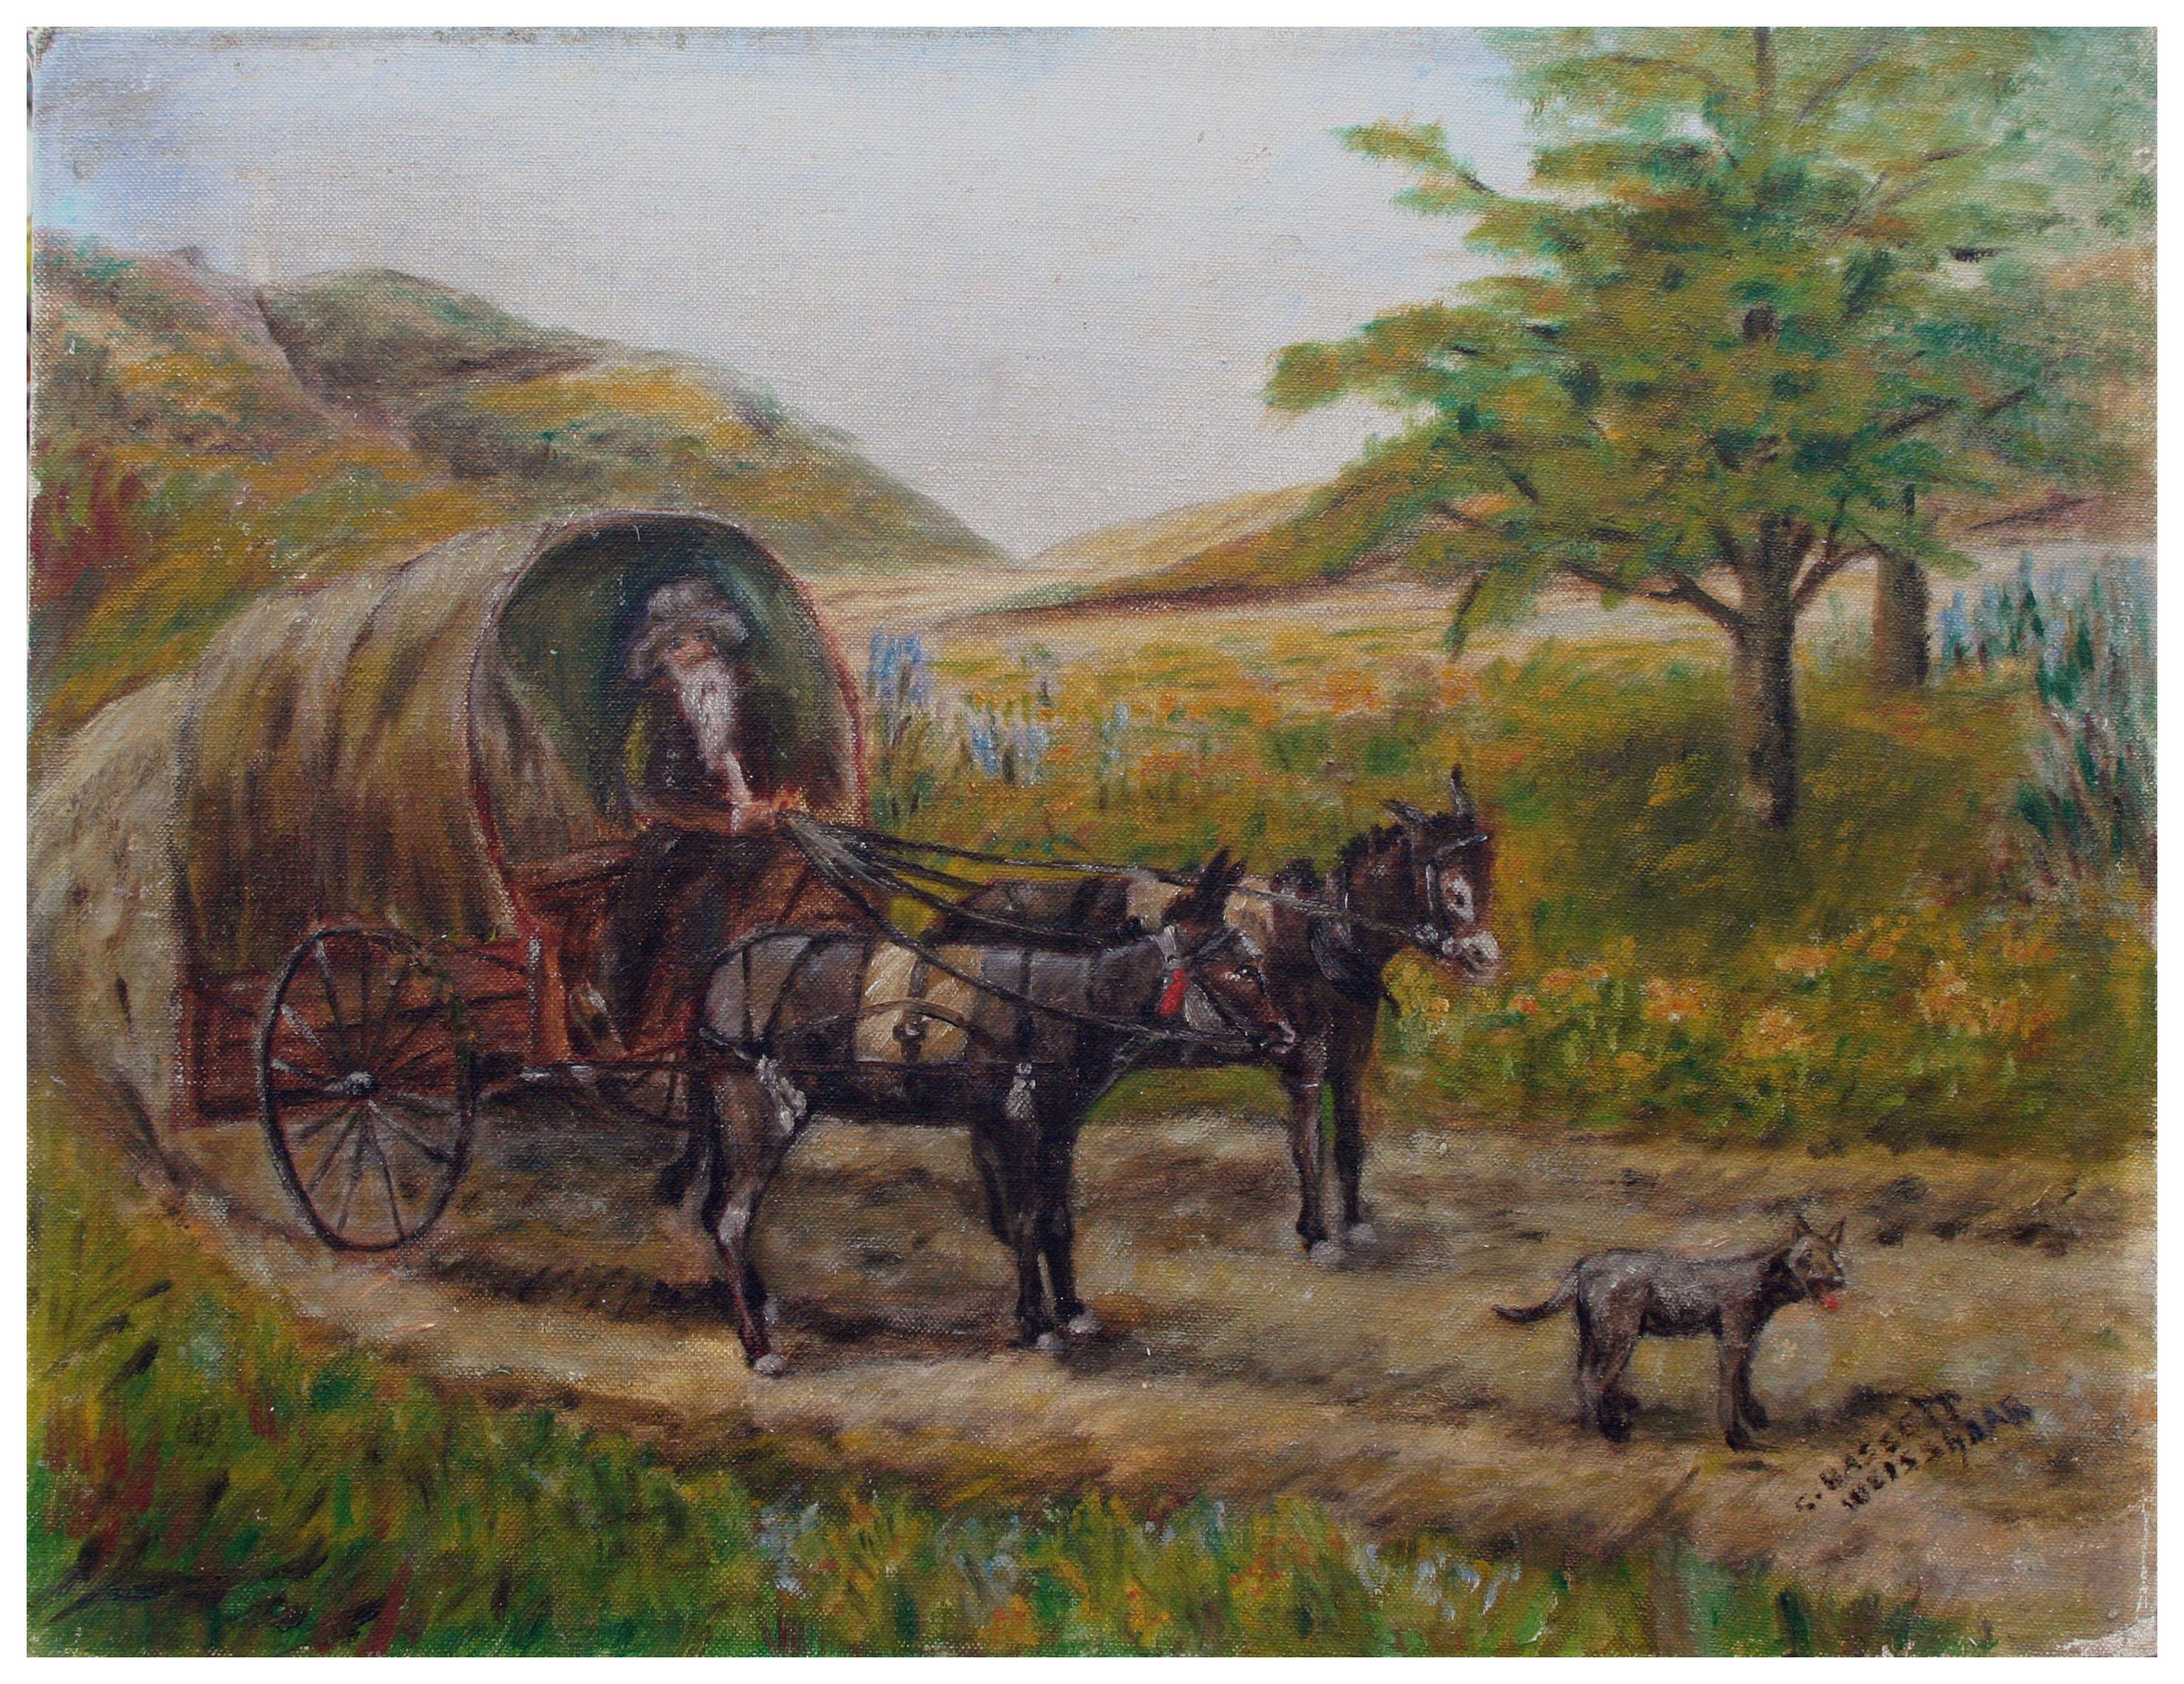 Wagon on the Road - Early 20th Century Landscape with Donkeys